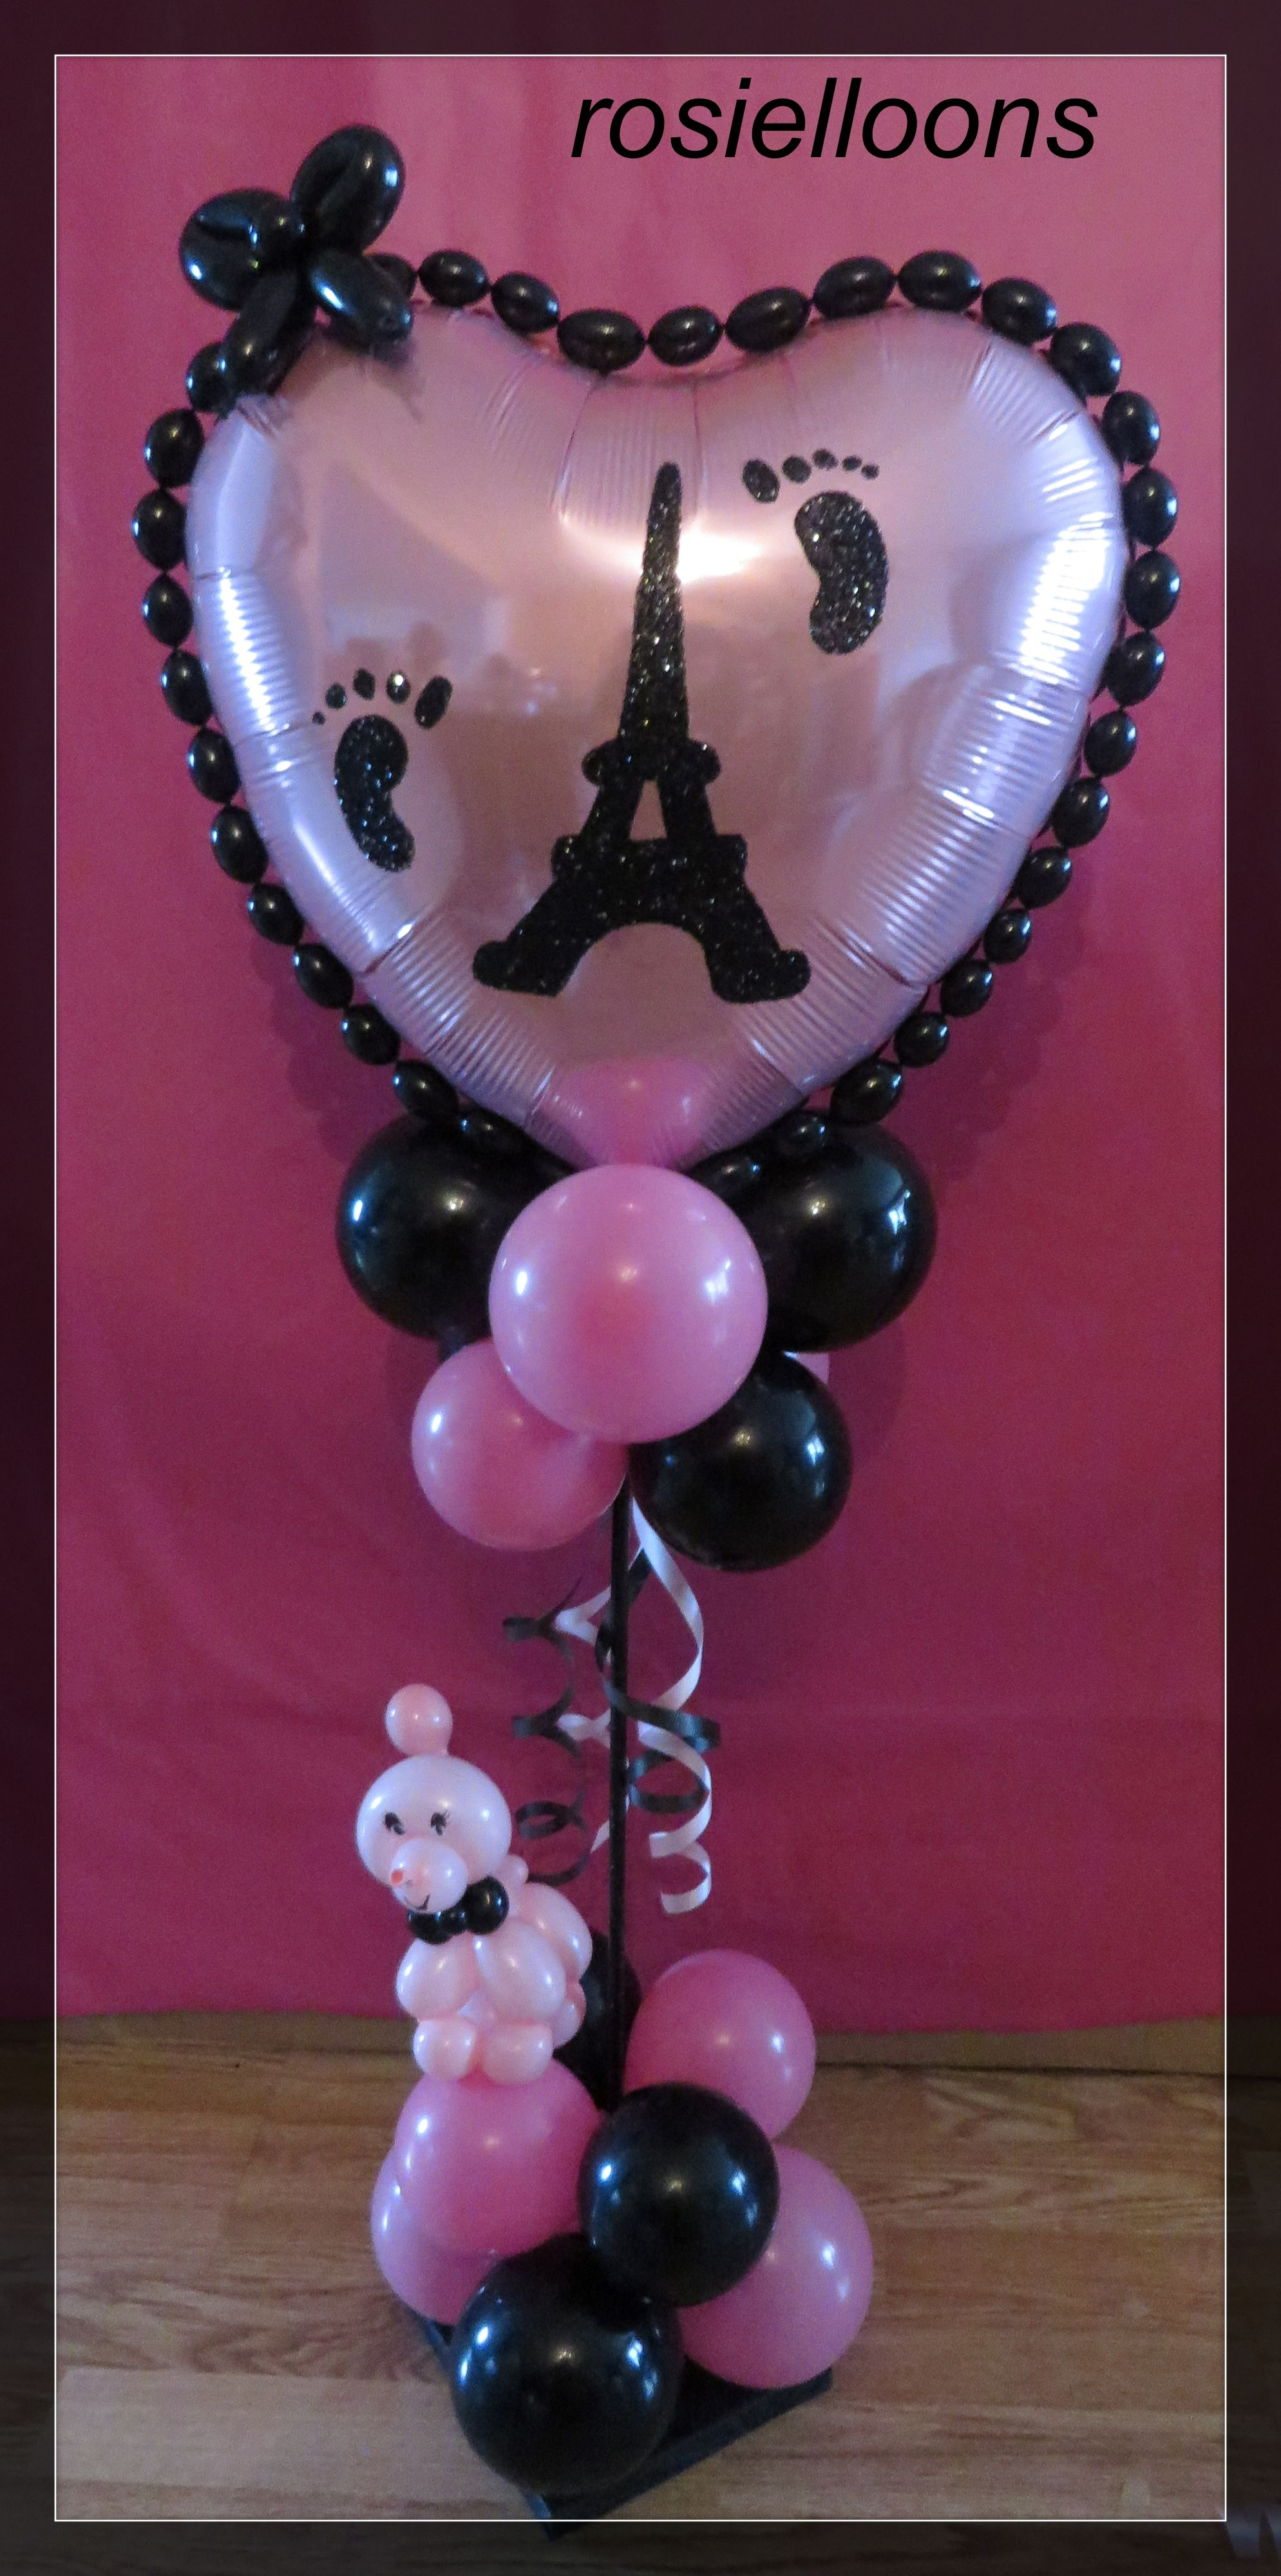 I Love Paris Theme Baby Shower Balloons; A Day In Paris Birthday Balloons; Eifel Tower Balloons; Bridal Shower Balloons; Wedding Balloons